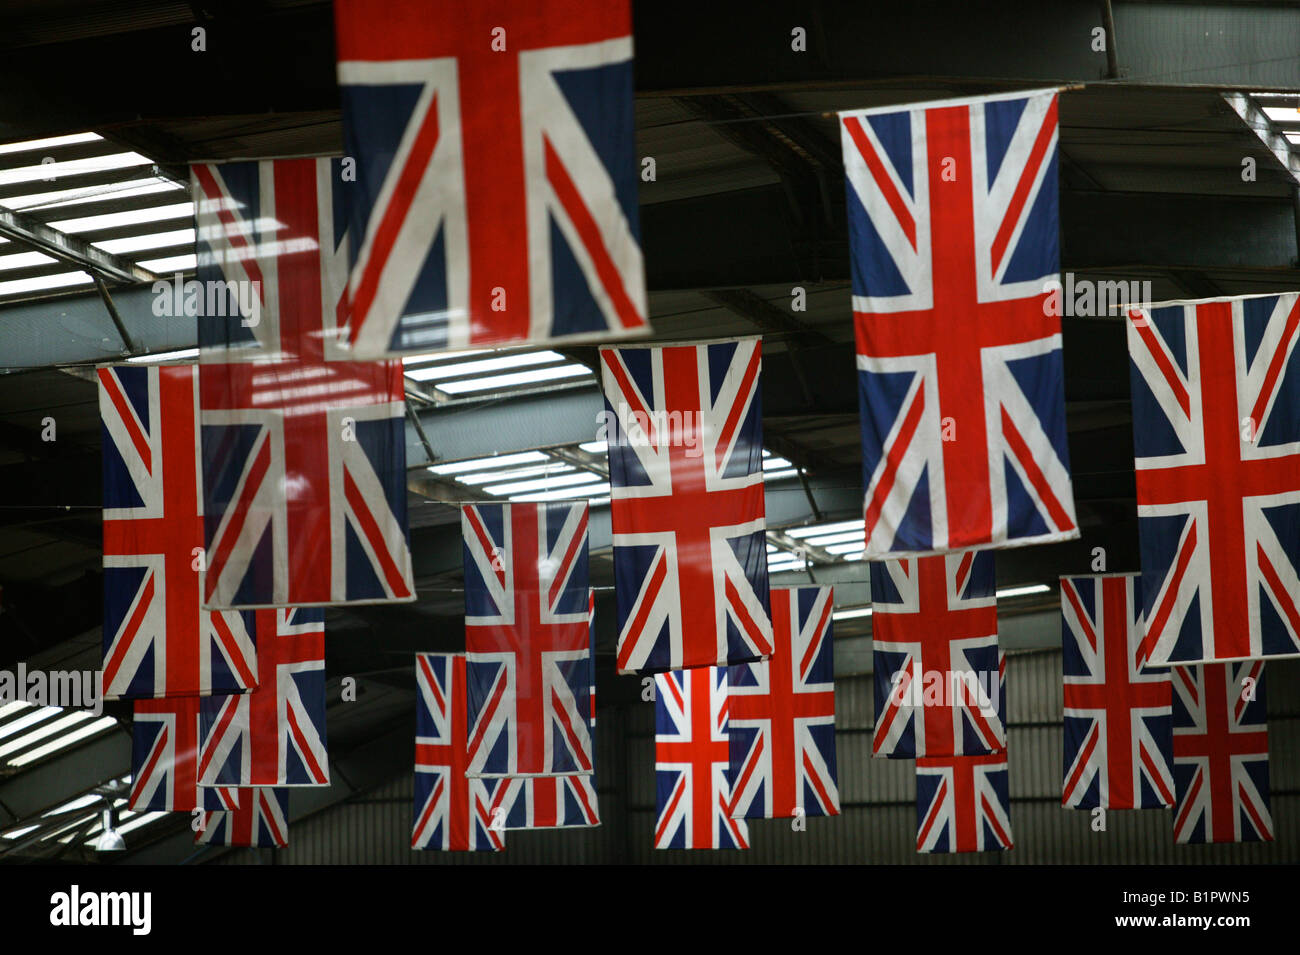 Union Jack Flags hang in the QE2 terminal in Southampton docks - Stock Image